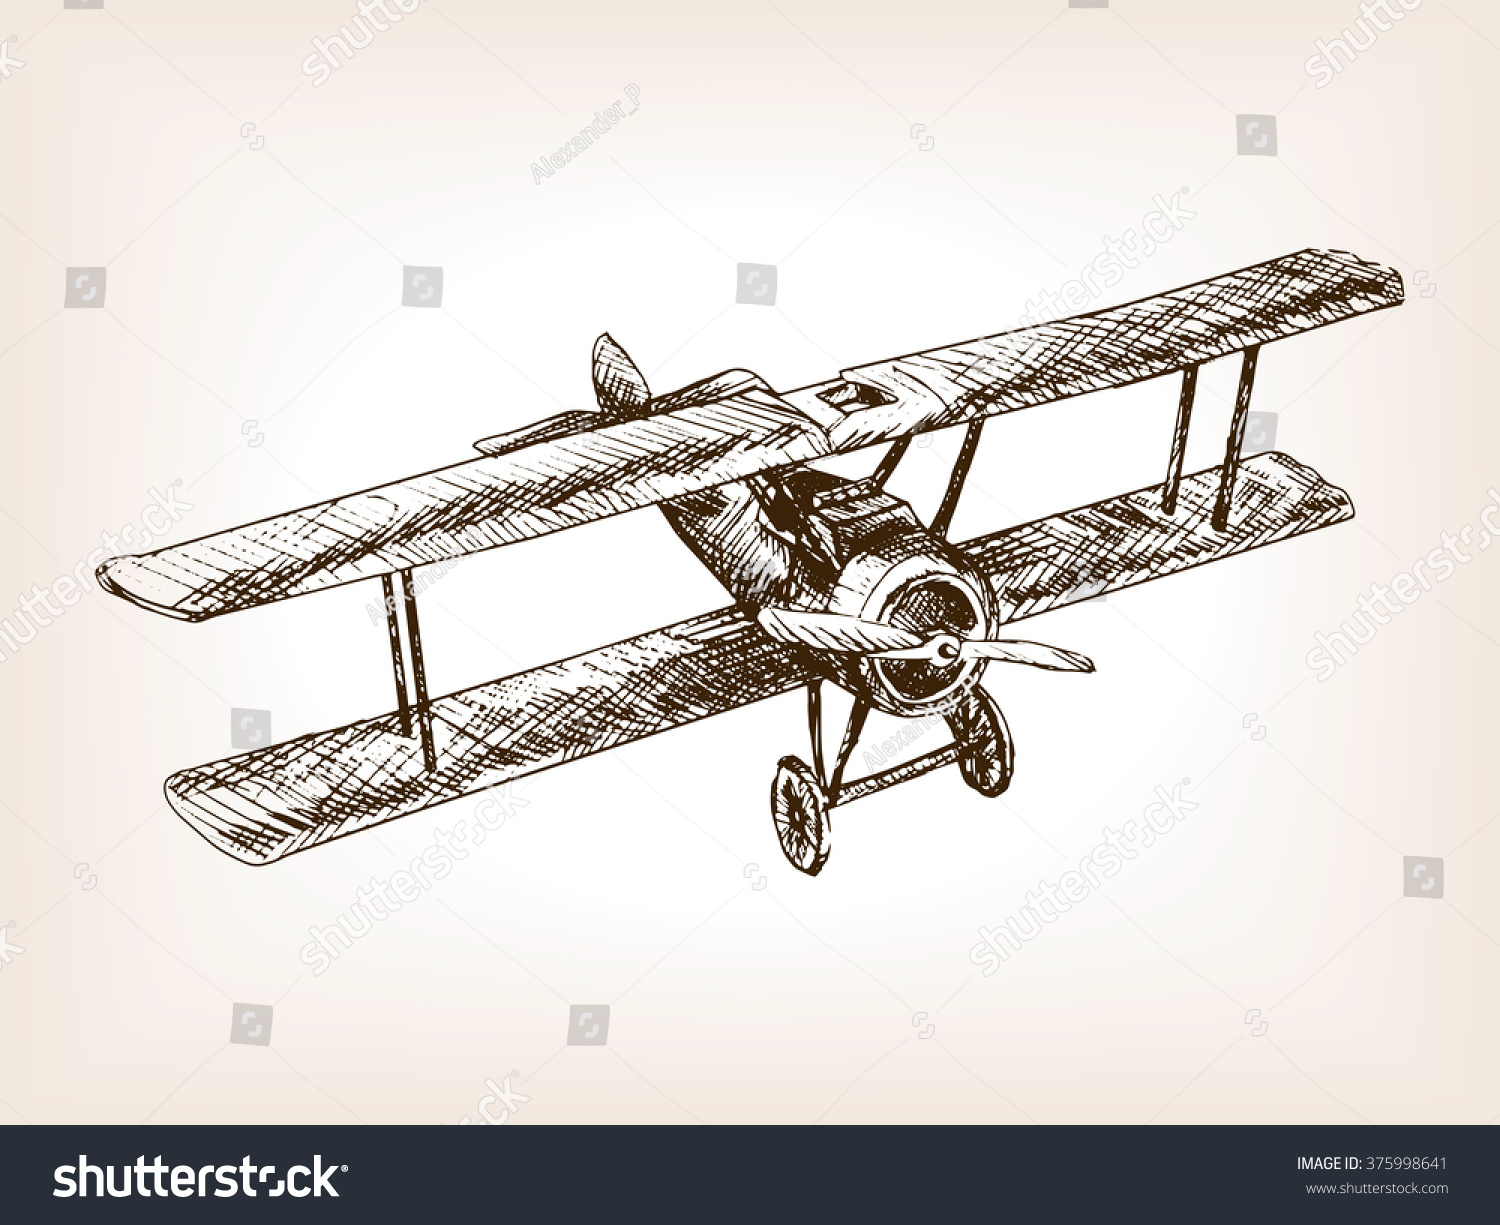 Retro Airplane Sketch Style Vector Illustration Stock Photo Photo